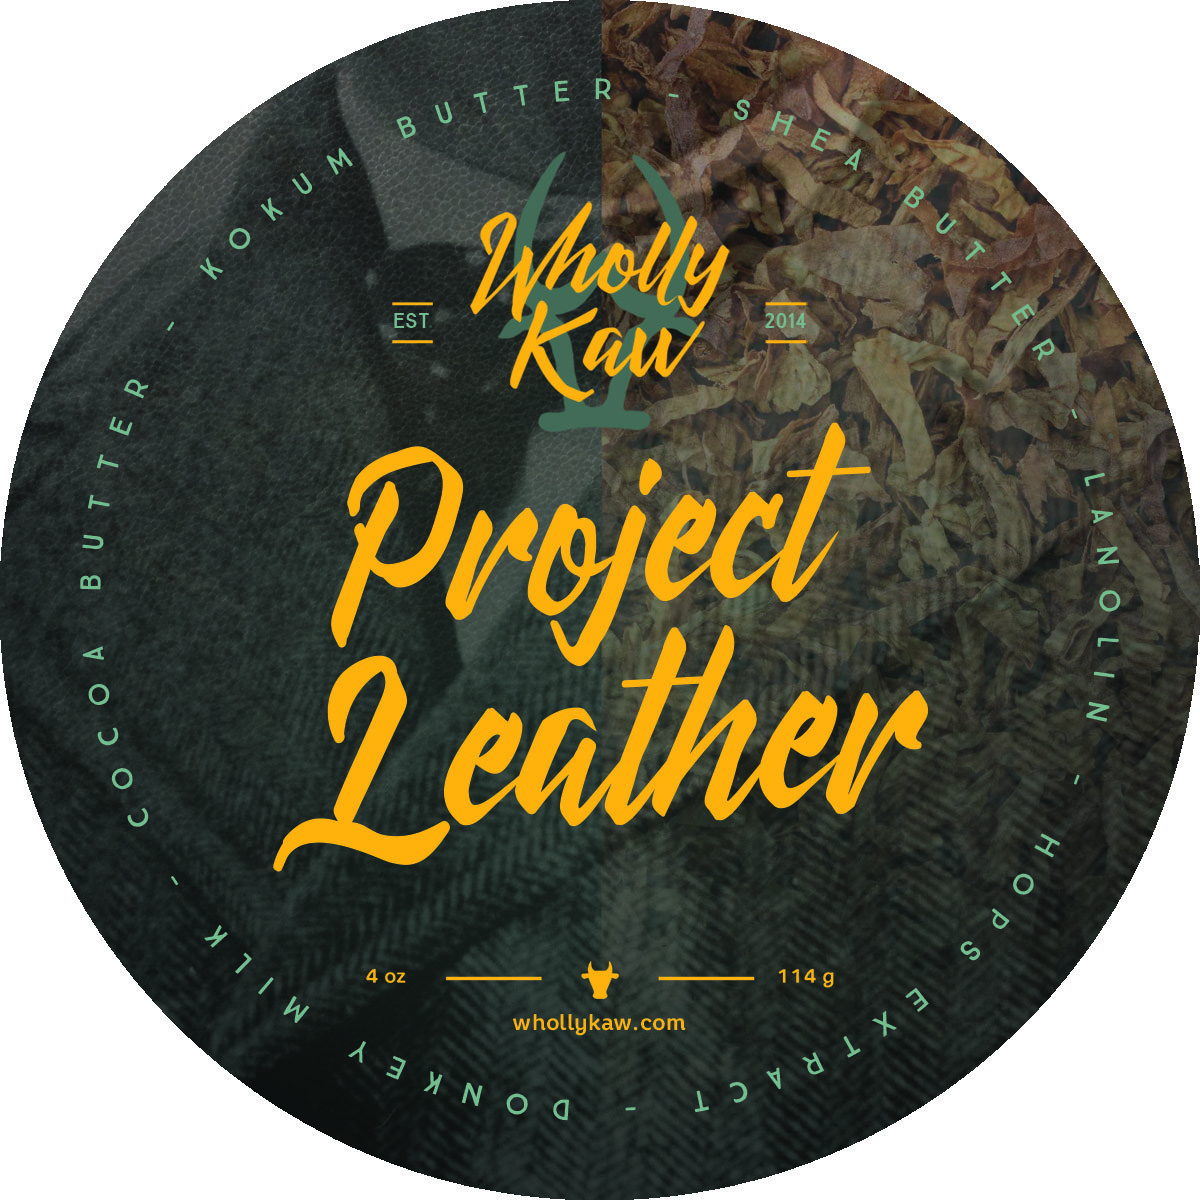 Wholly Kaw - Project Leather - Soap image